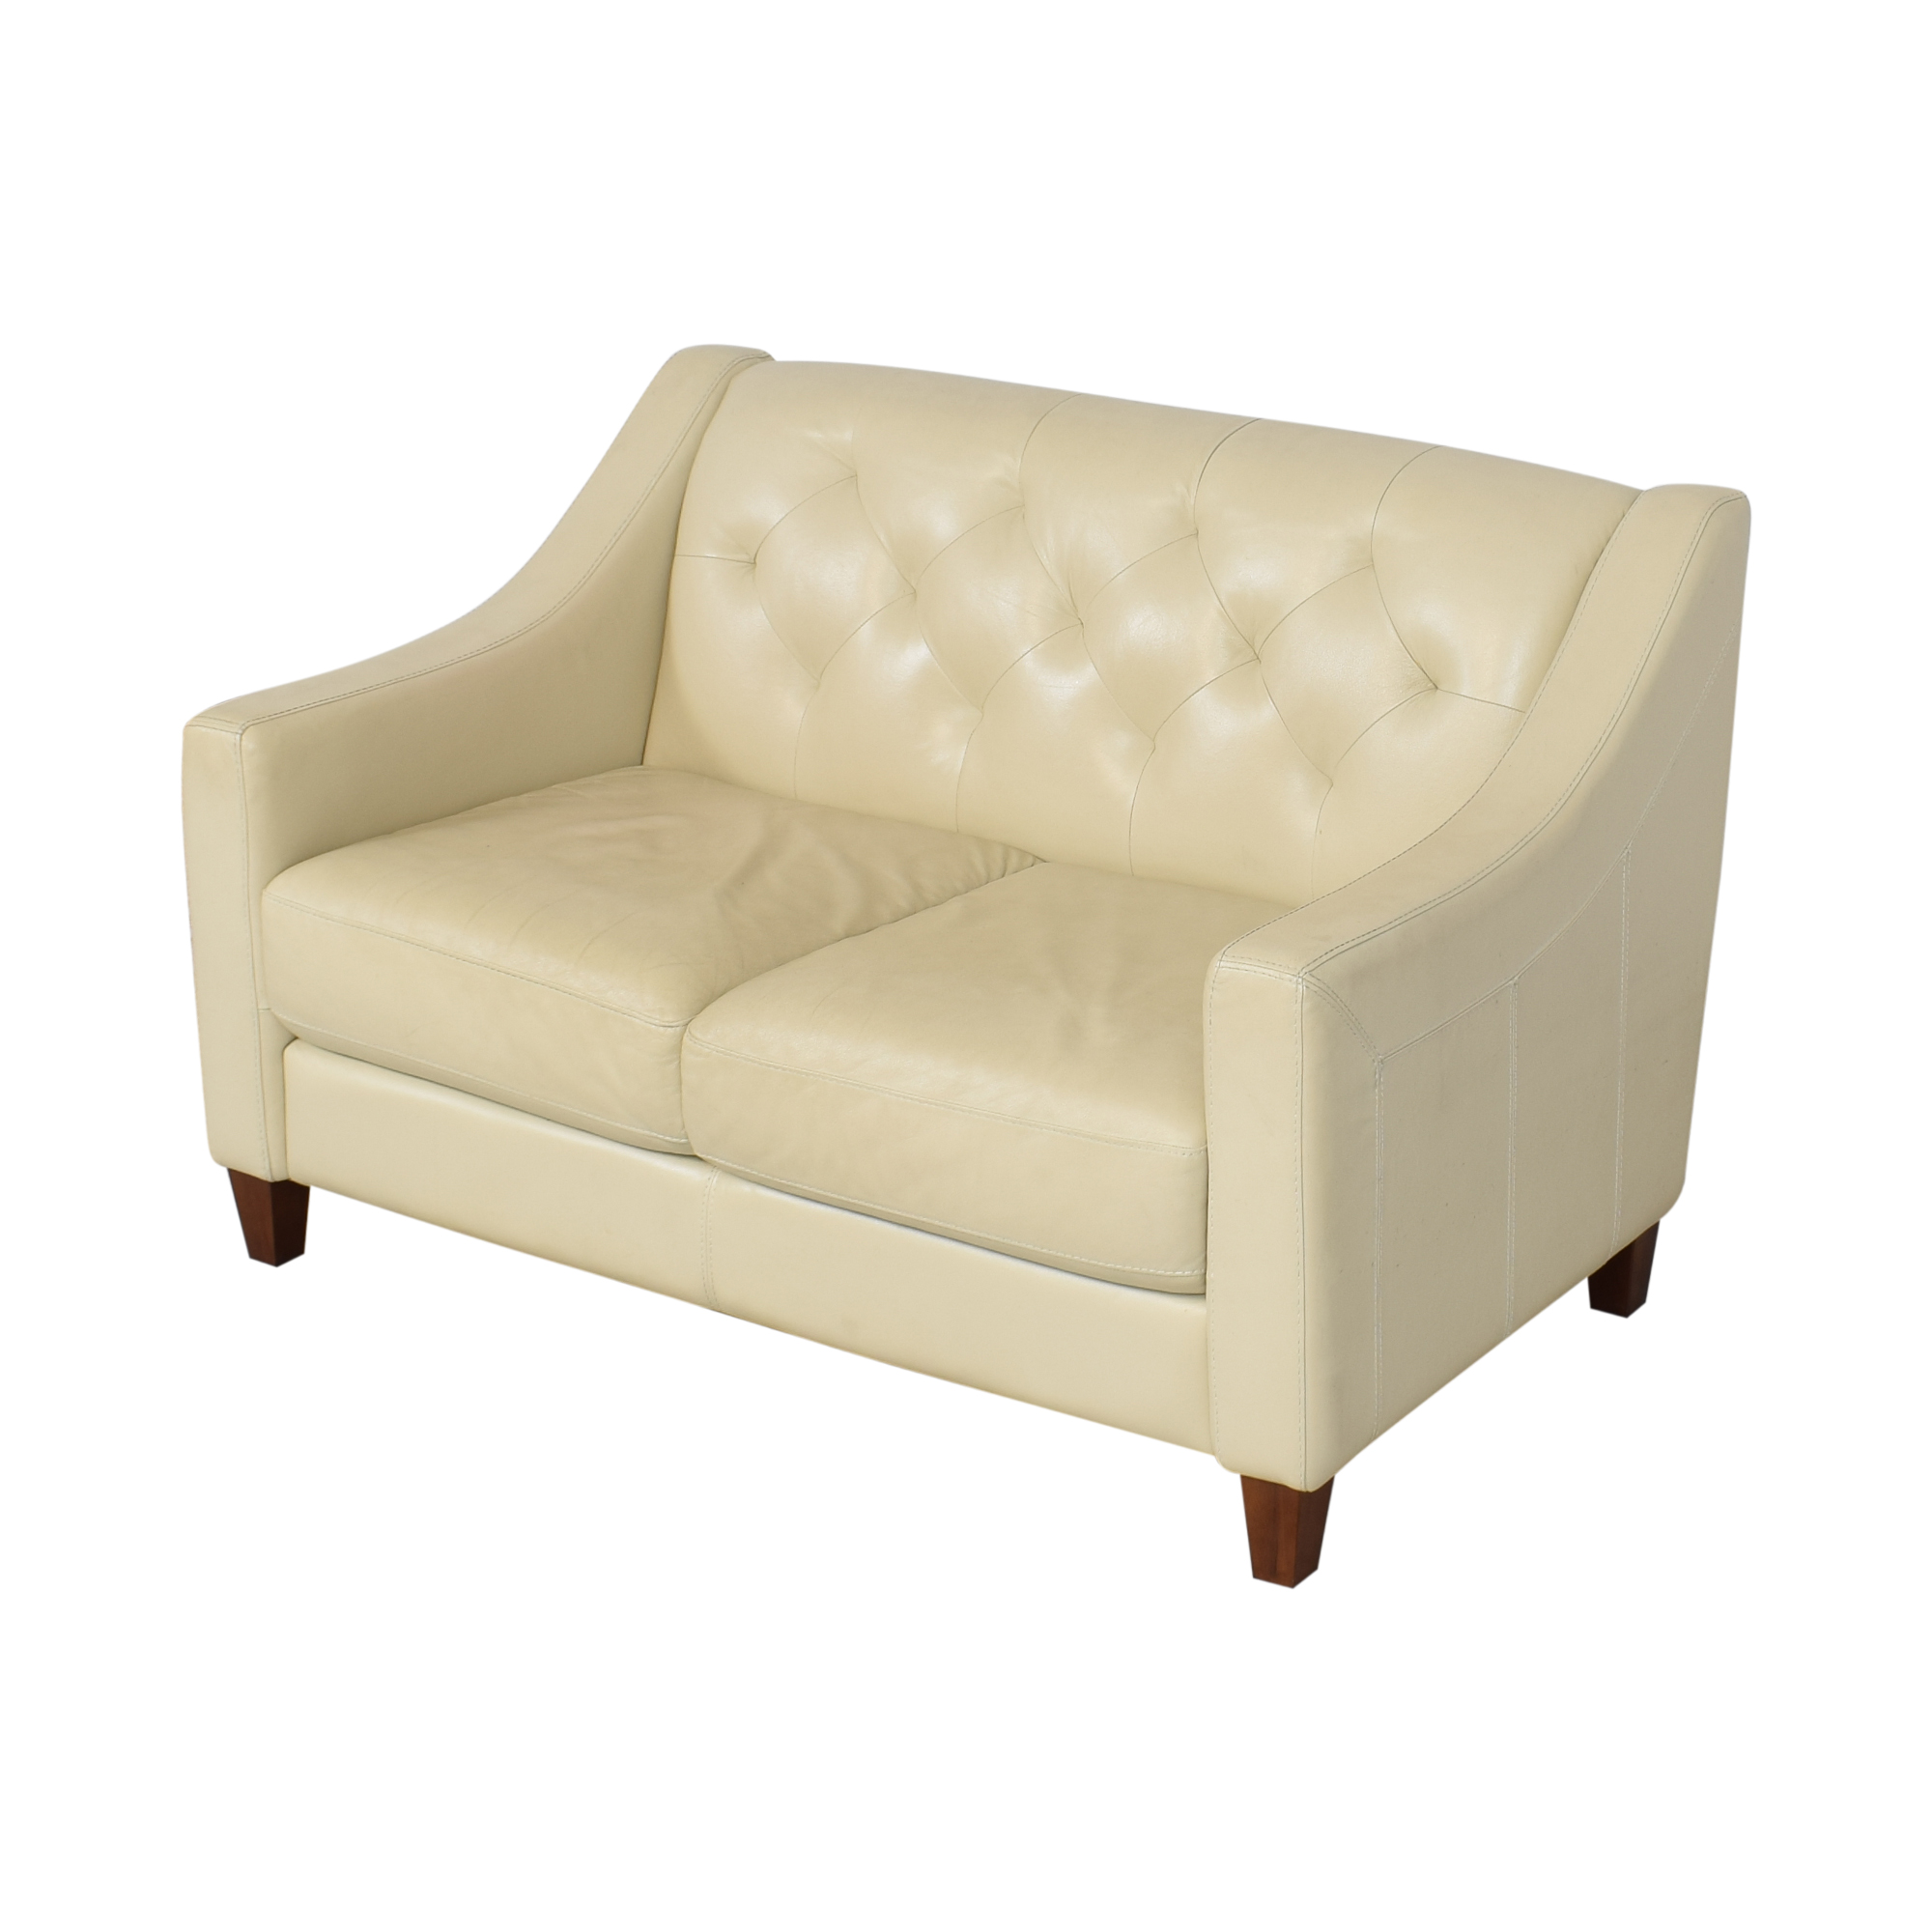 Chateau d'Ax Chateau d'Ax Slope Arm Tufted Loveseat discount